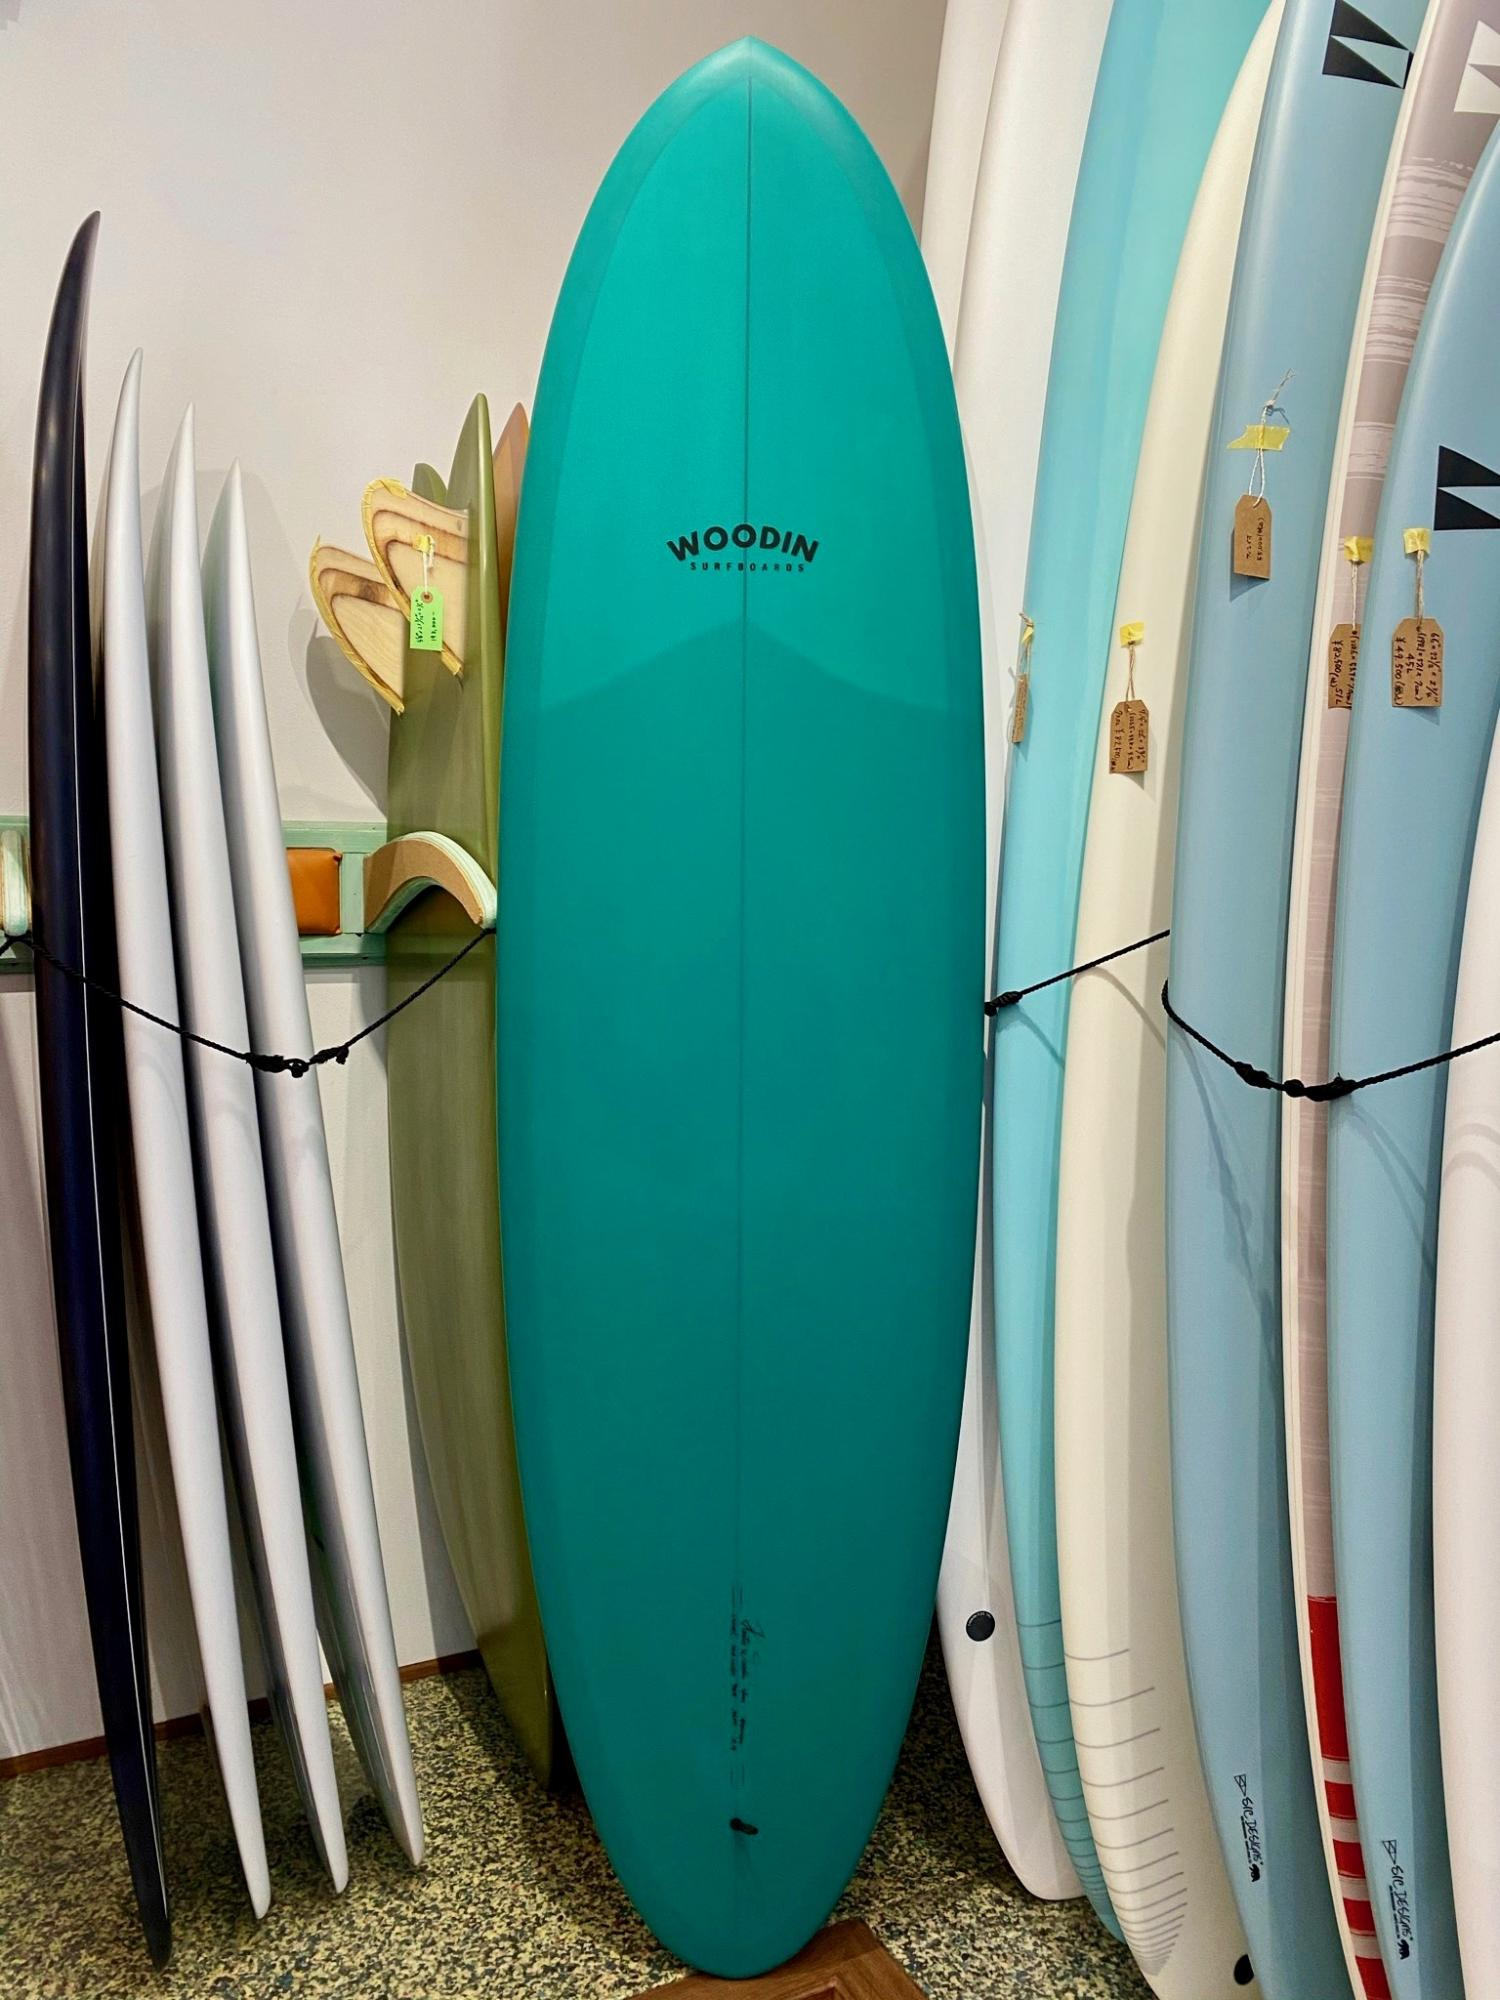 Gypsy Eye model 6.6 WOODIN SURFBOARDS